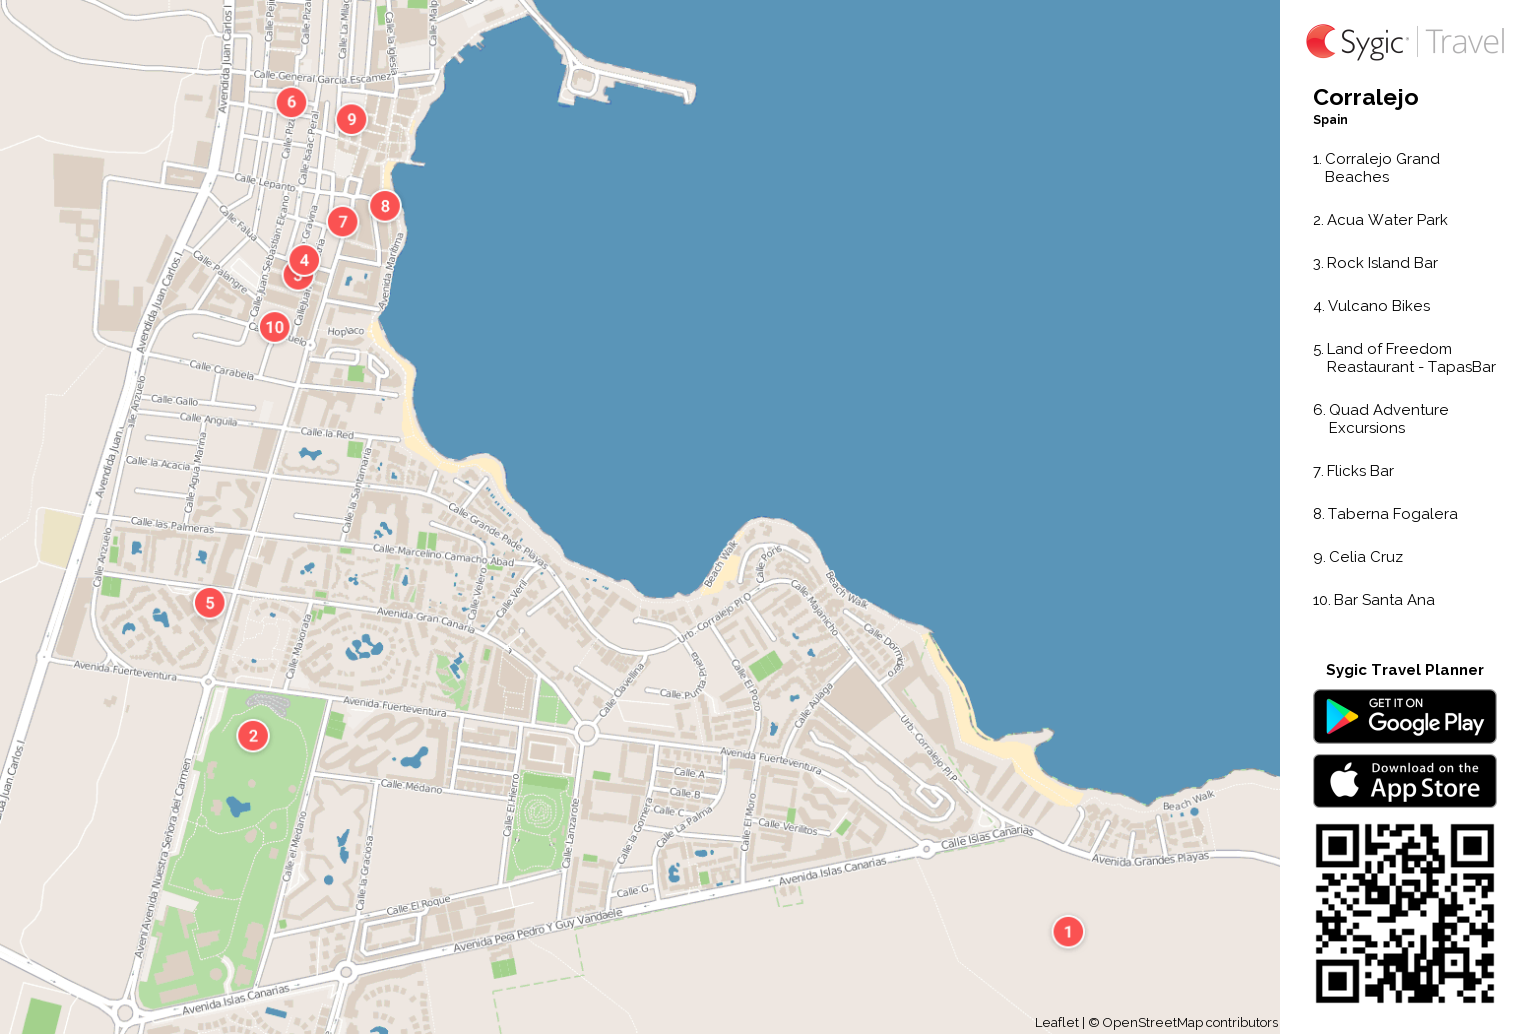 Map Of Corralejo Corralejo Printable Tourist Map | Sygic Travel